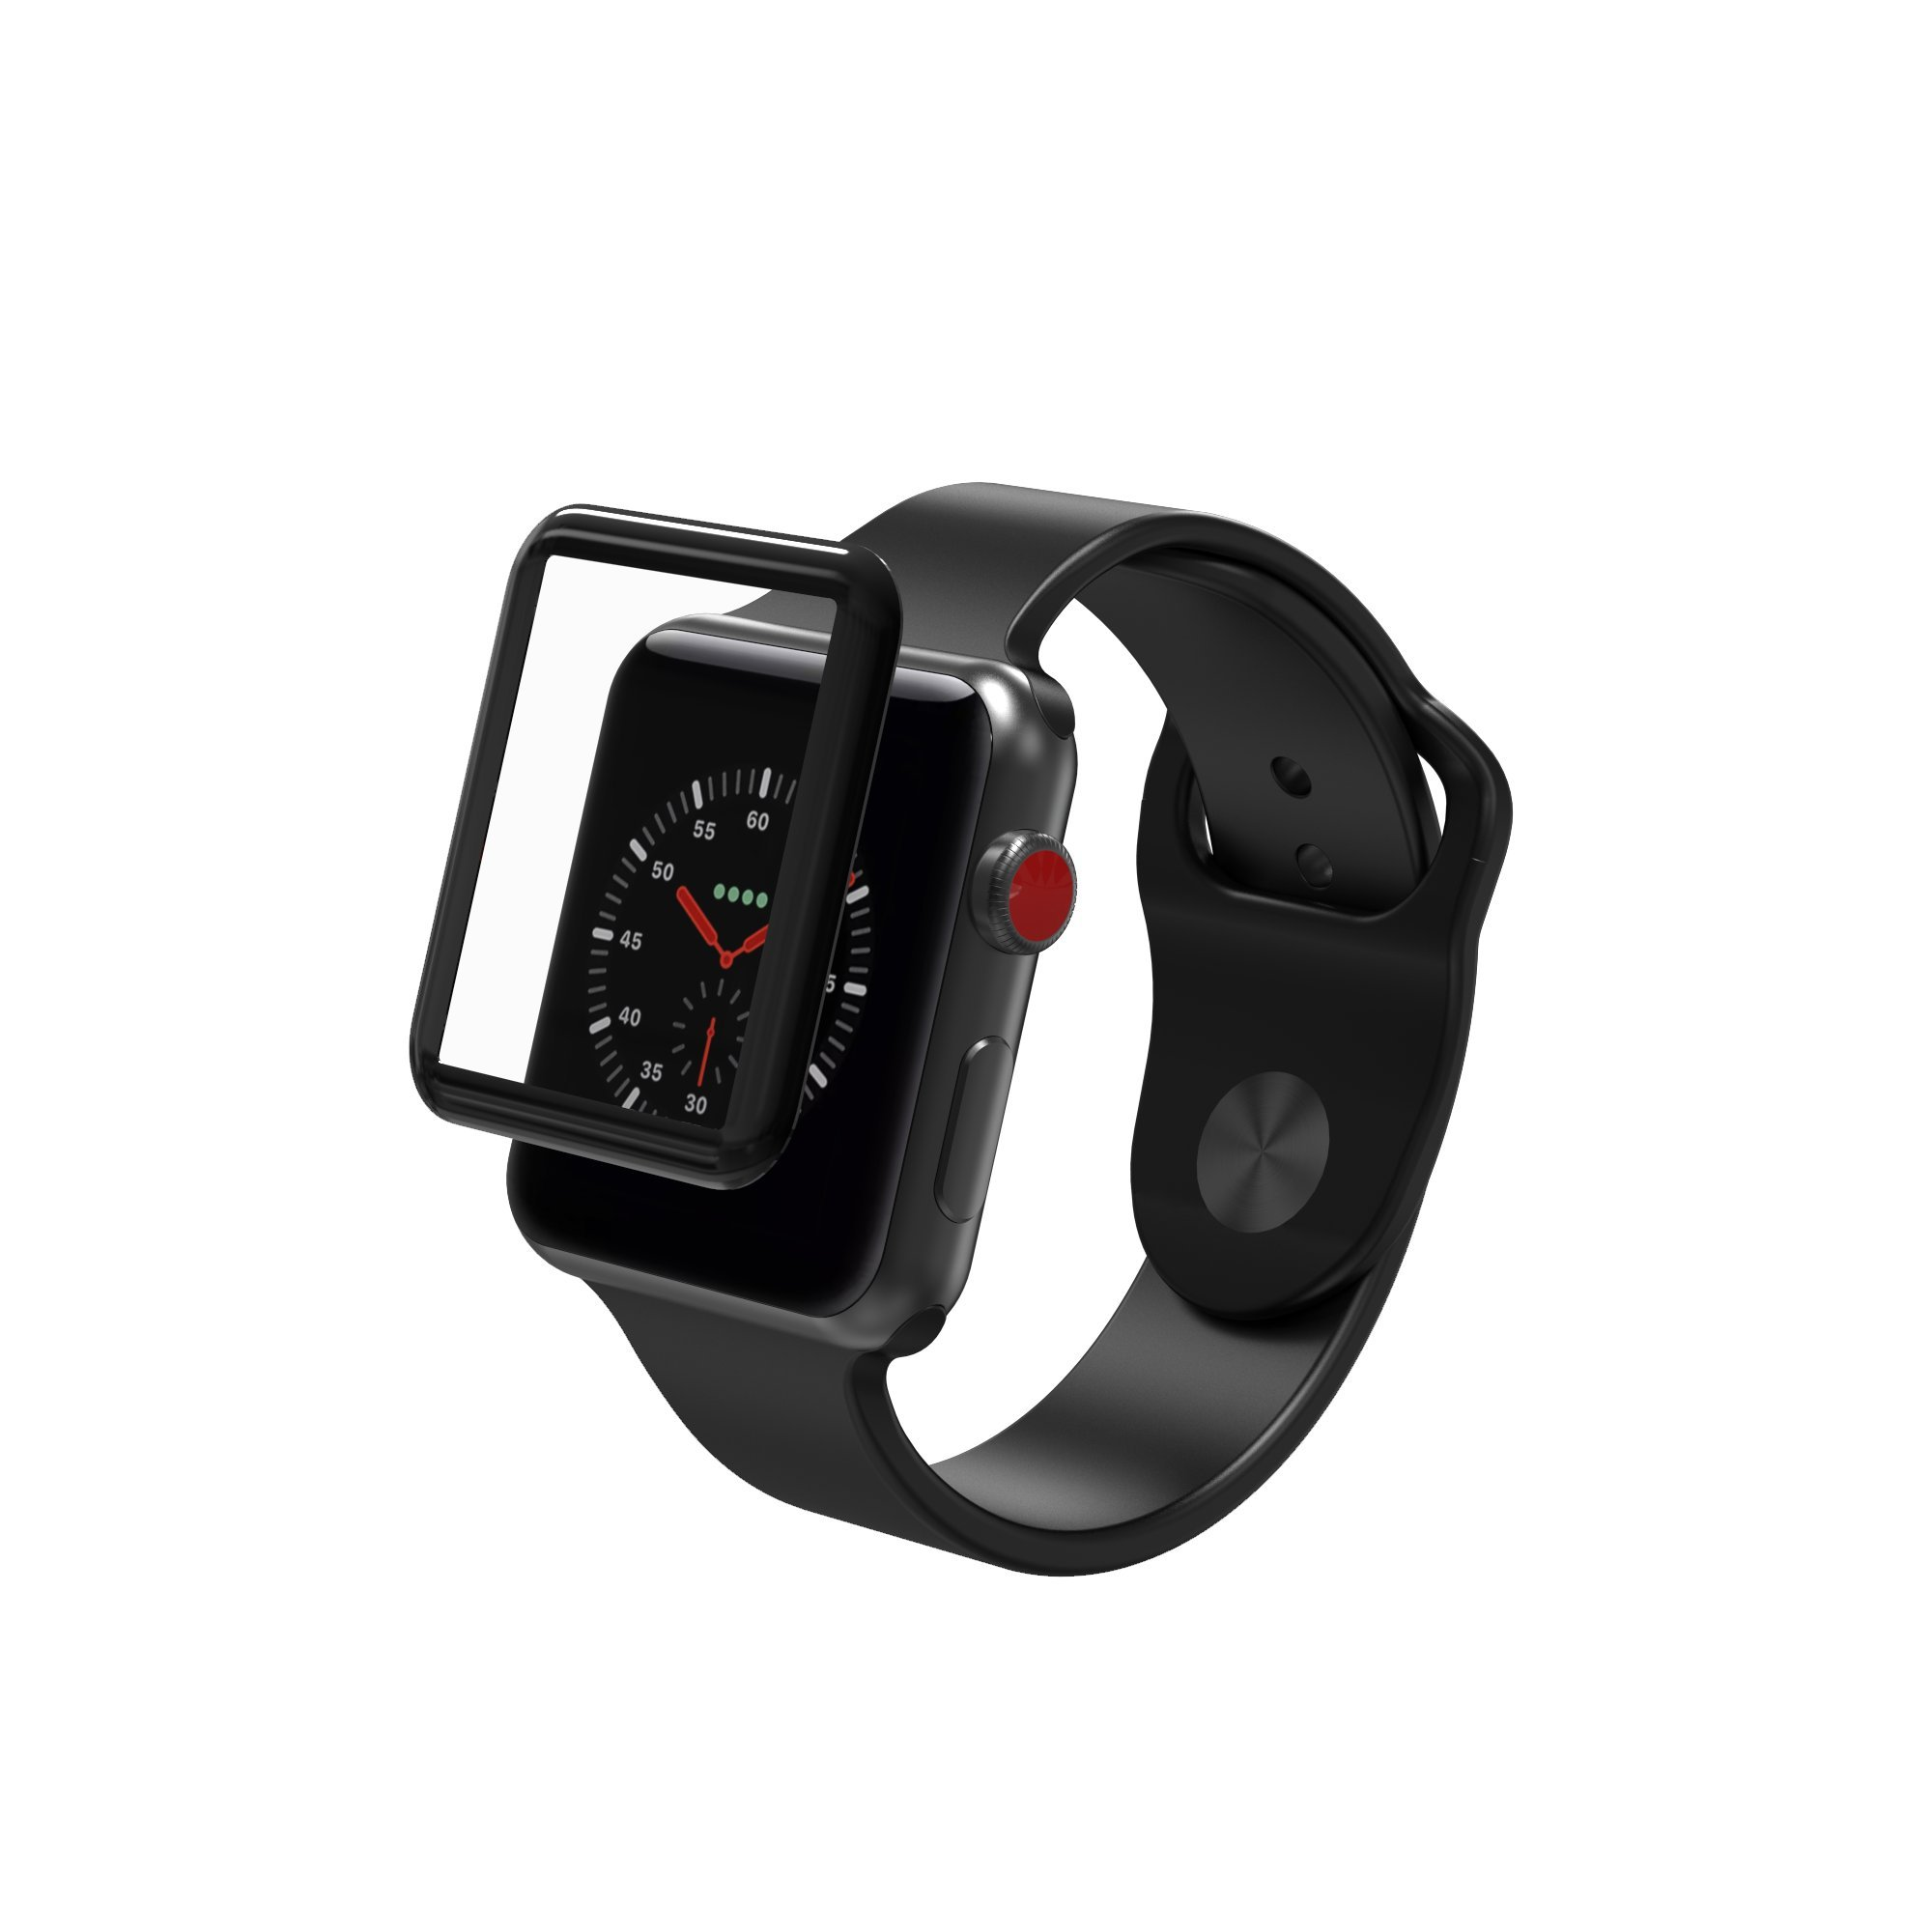 ZAGG InvisibleShield Glass Curve Elite - Extreme Impact and Full Screen Scratch Protection for Apple Watch Series 3 (38mm) - Black by ZAGG (Image #1)